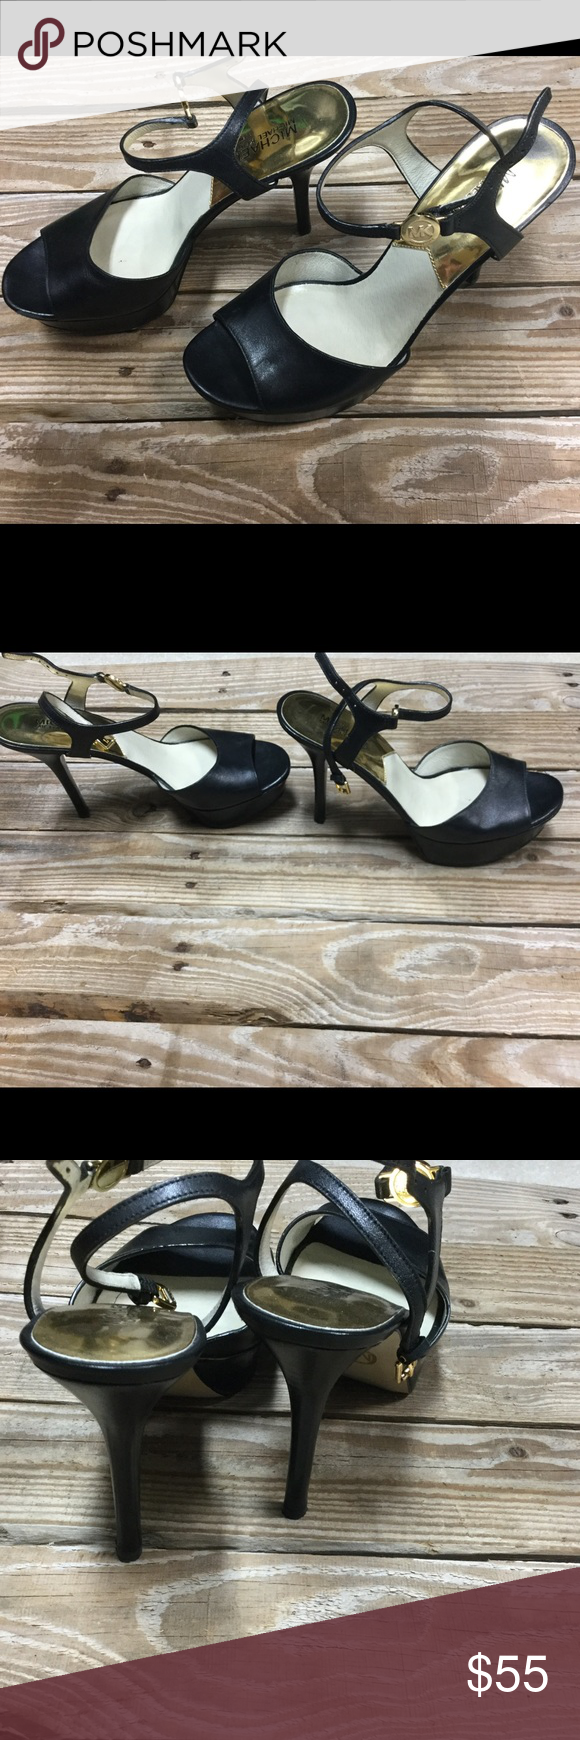 Michael Kors Platform Heels Black Size 9 Michael Kors Platform Heels Black Size 9. Worn a few times. Cute for Business Casual or the Club! Mild blem front right / can't see when on. Purchased new this way! Didn't care, had to have them for a Christmas party ⛄️they are so HOT!🔥 Michael Kors Shoes Platforms